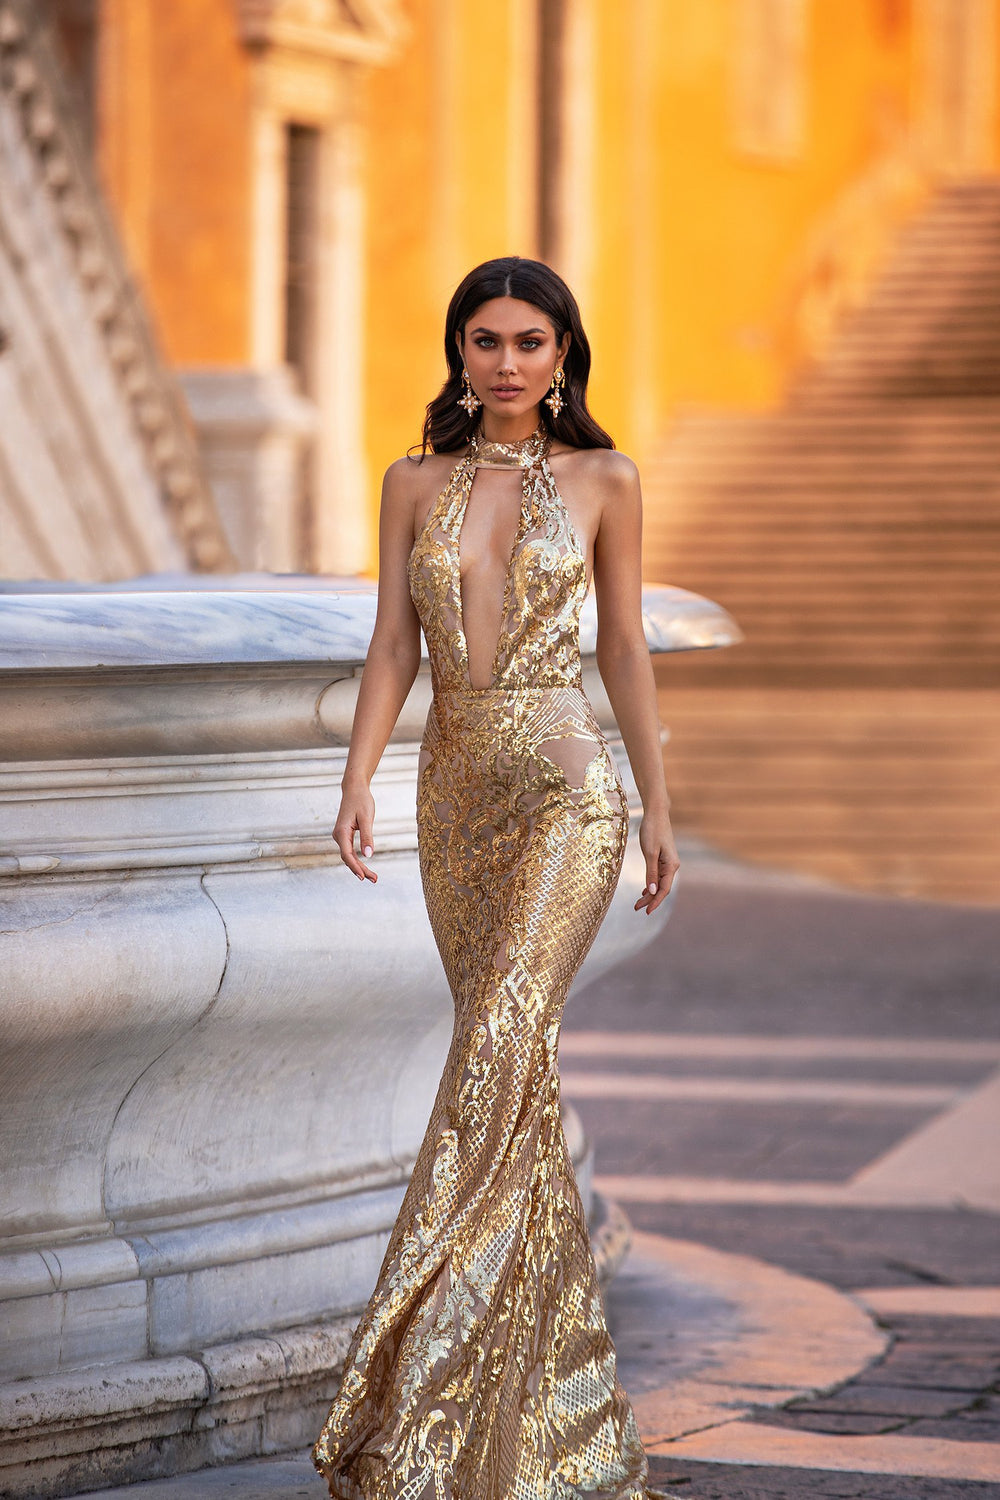 Nicola - Gold Halterneck Backless Sequin Gown with Open Plunge Neck